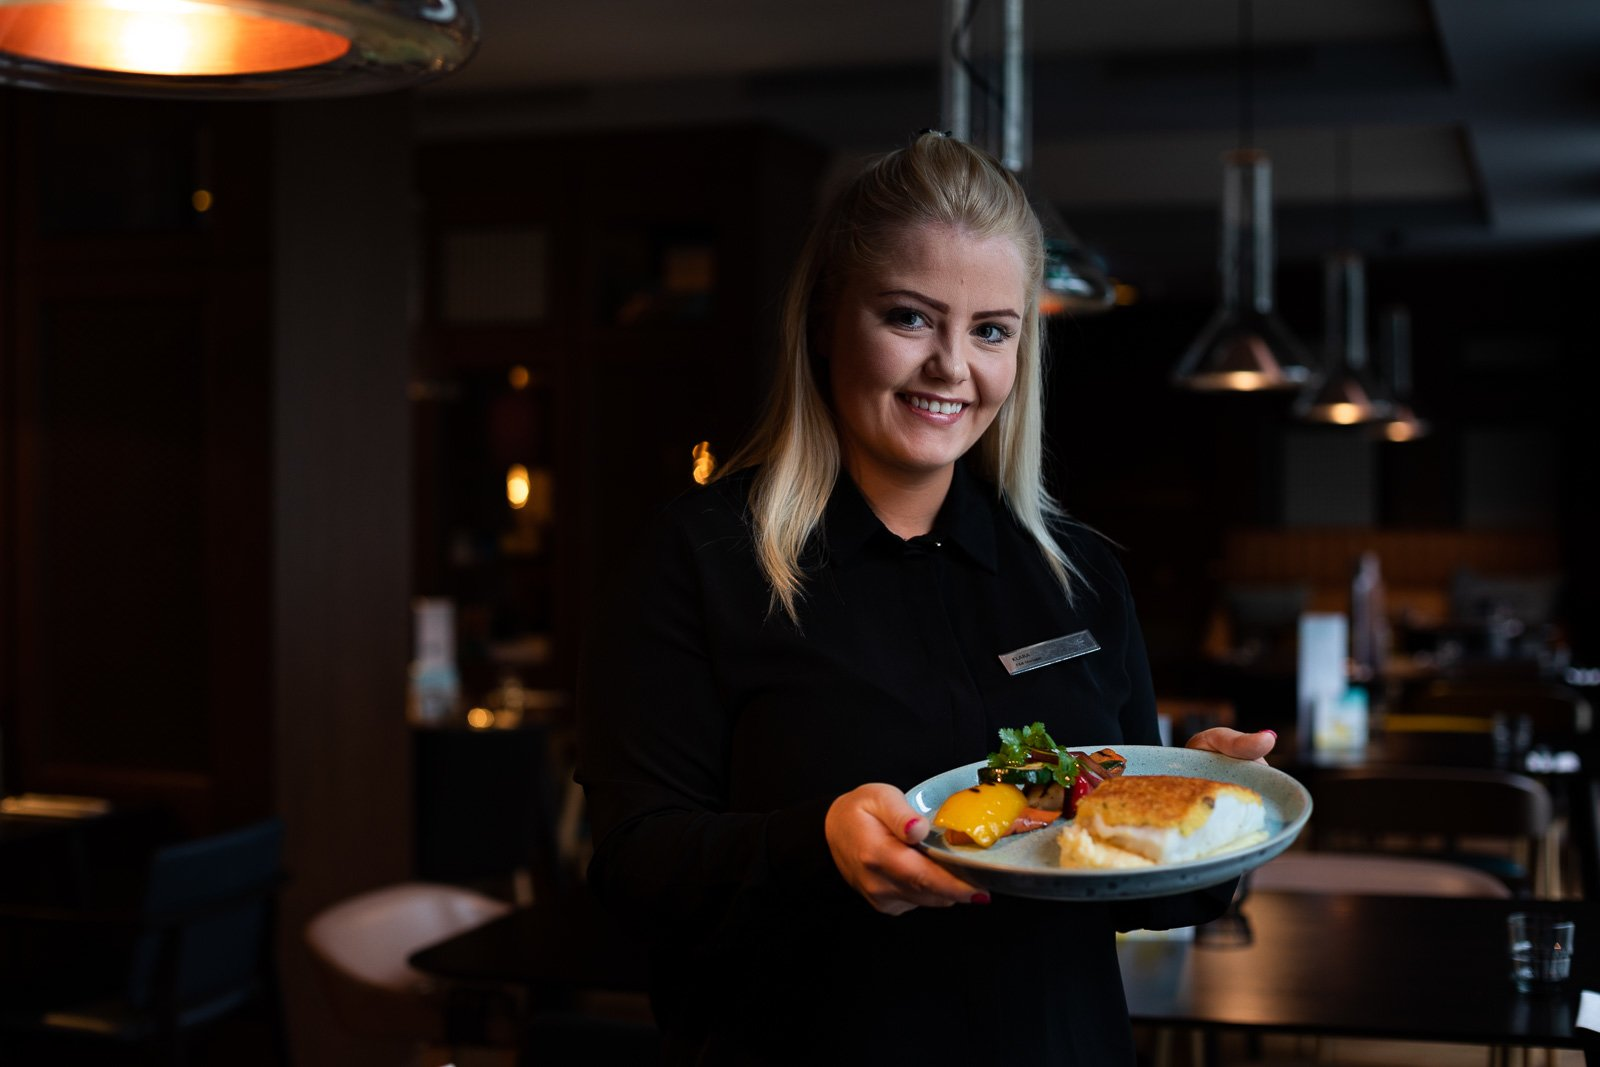 All Good: Family Food In The Heart Of Reykjavík At Gott